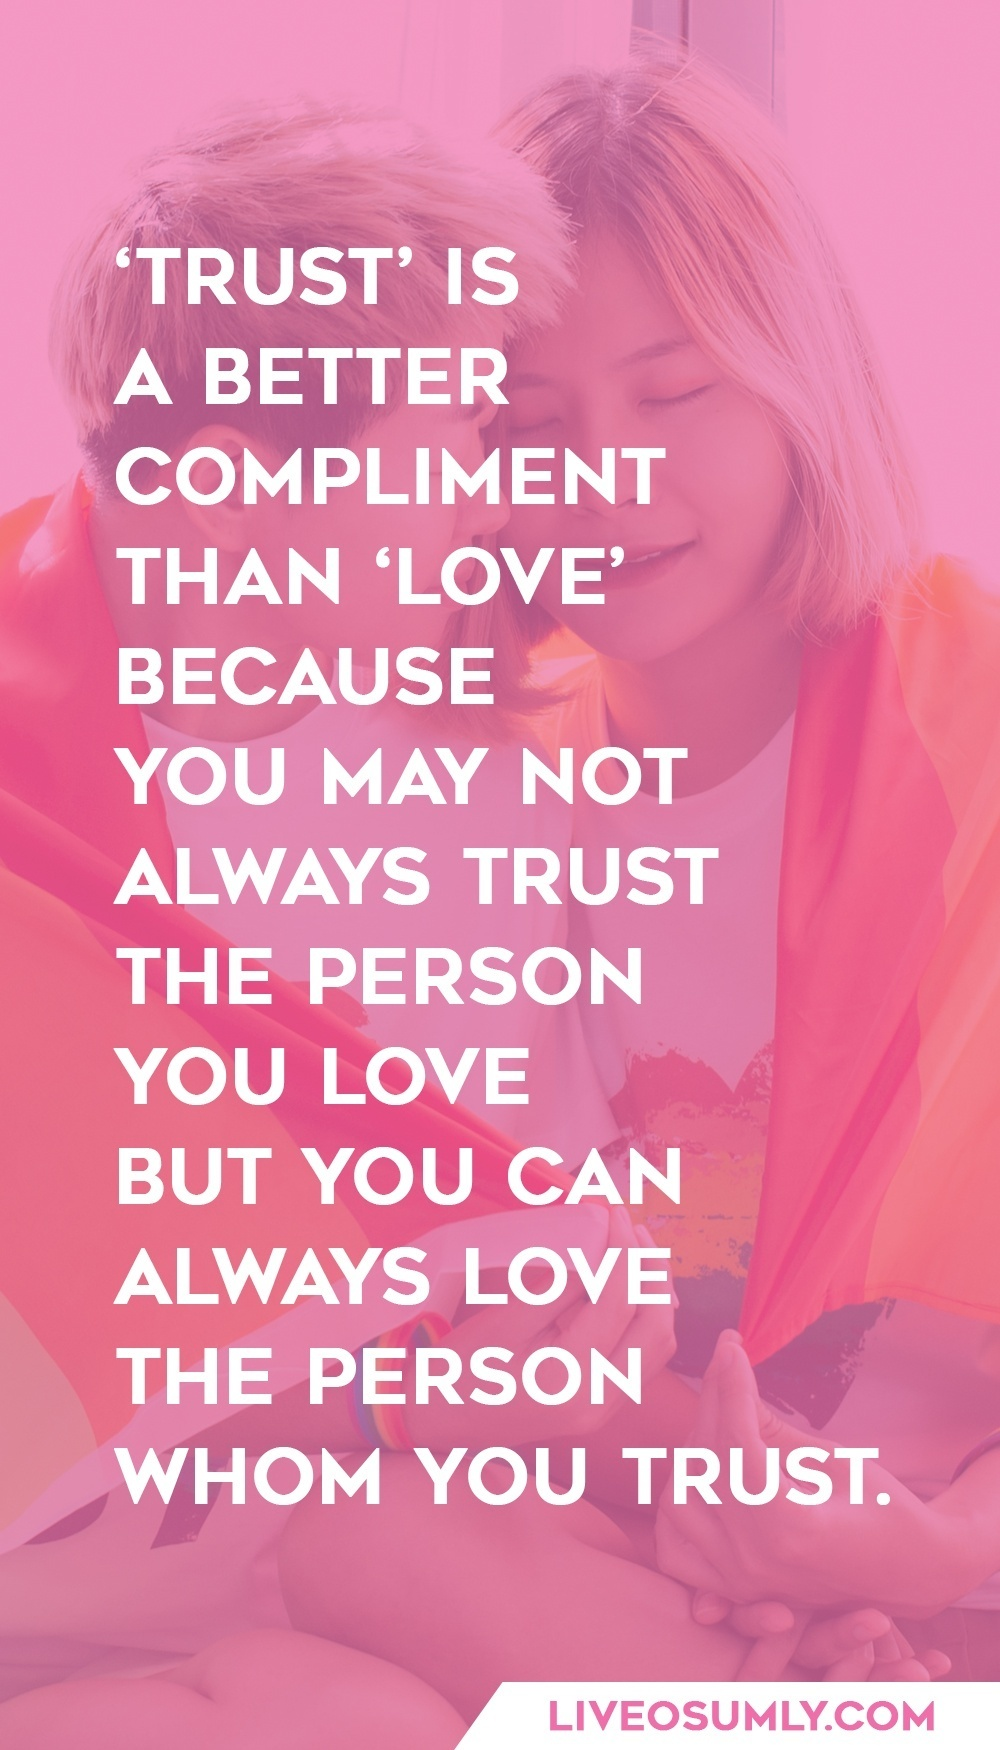 Positive Trust Quote in a Relationship